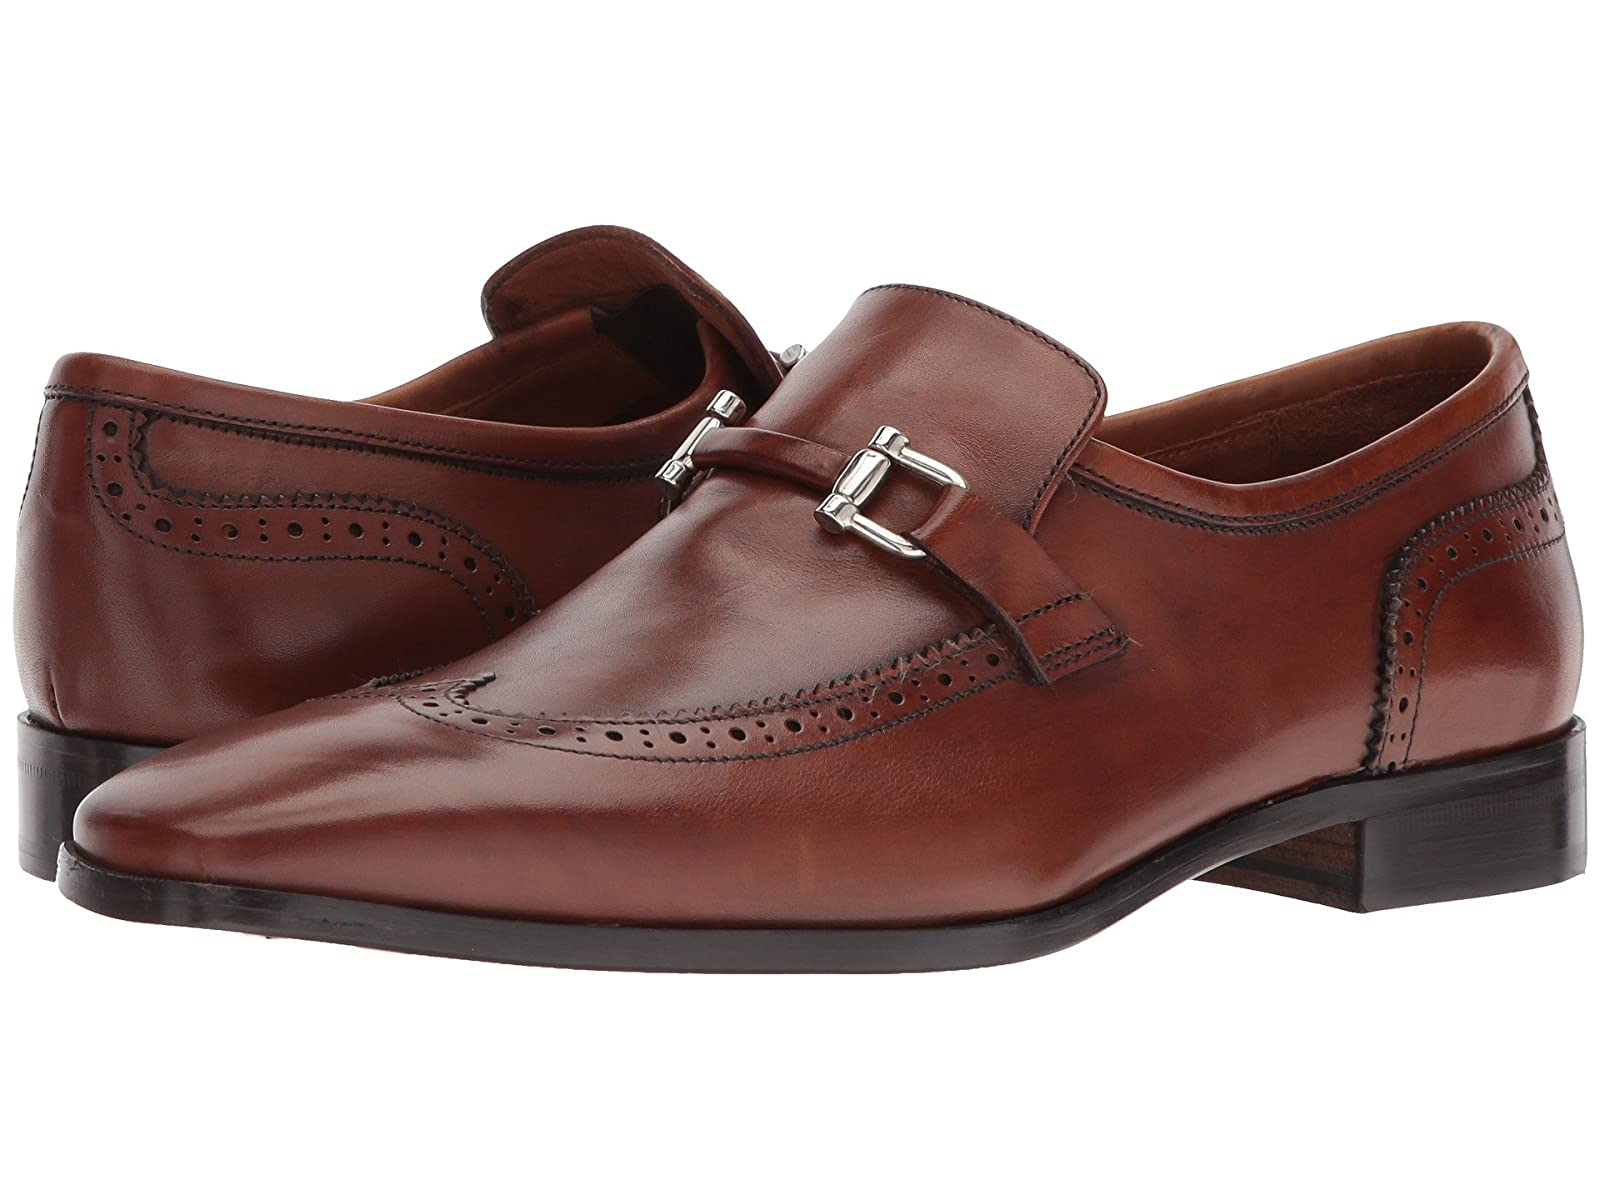 Massimo Matteo Slip-On Wing BitAtmospheric grades have affordable shoes